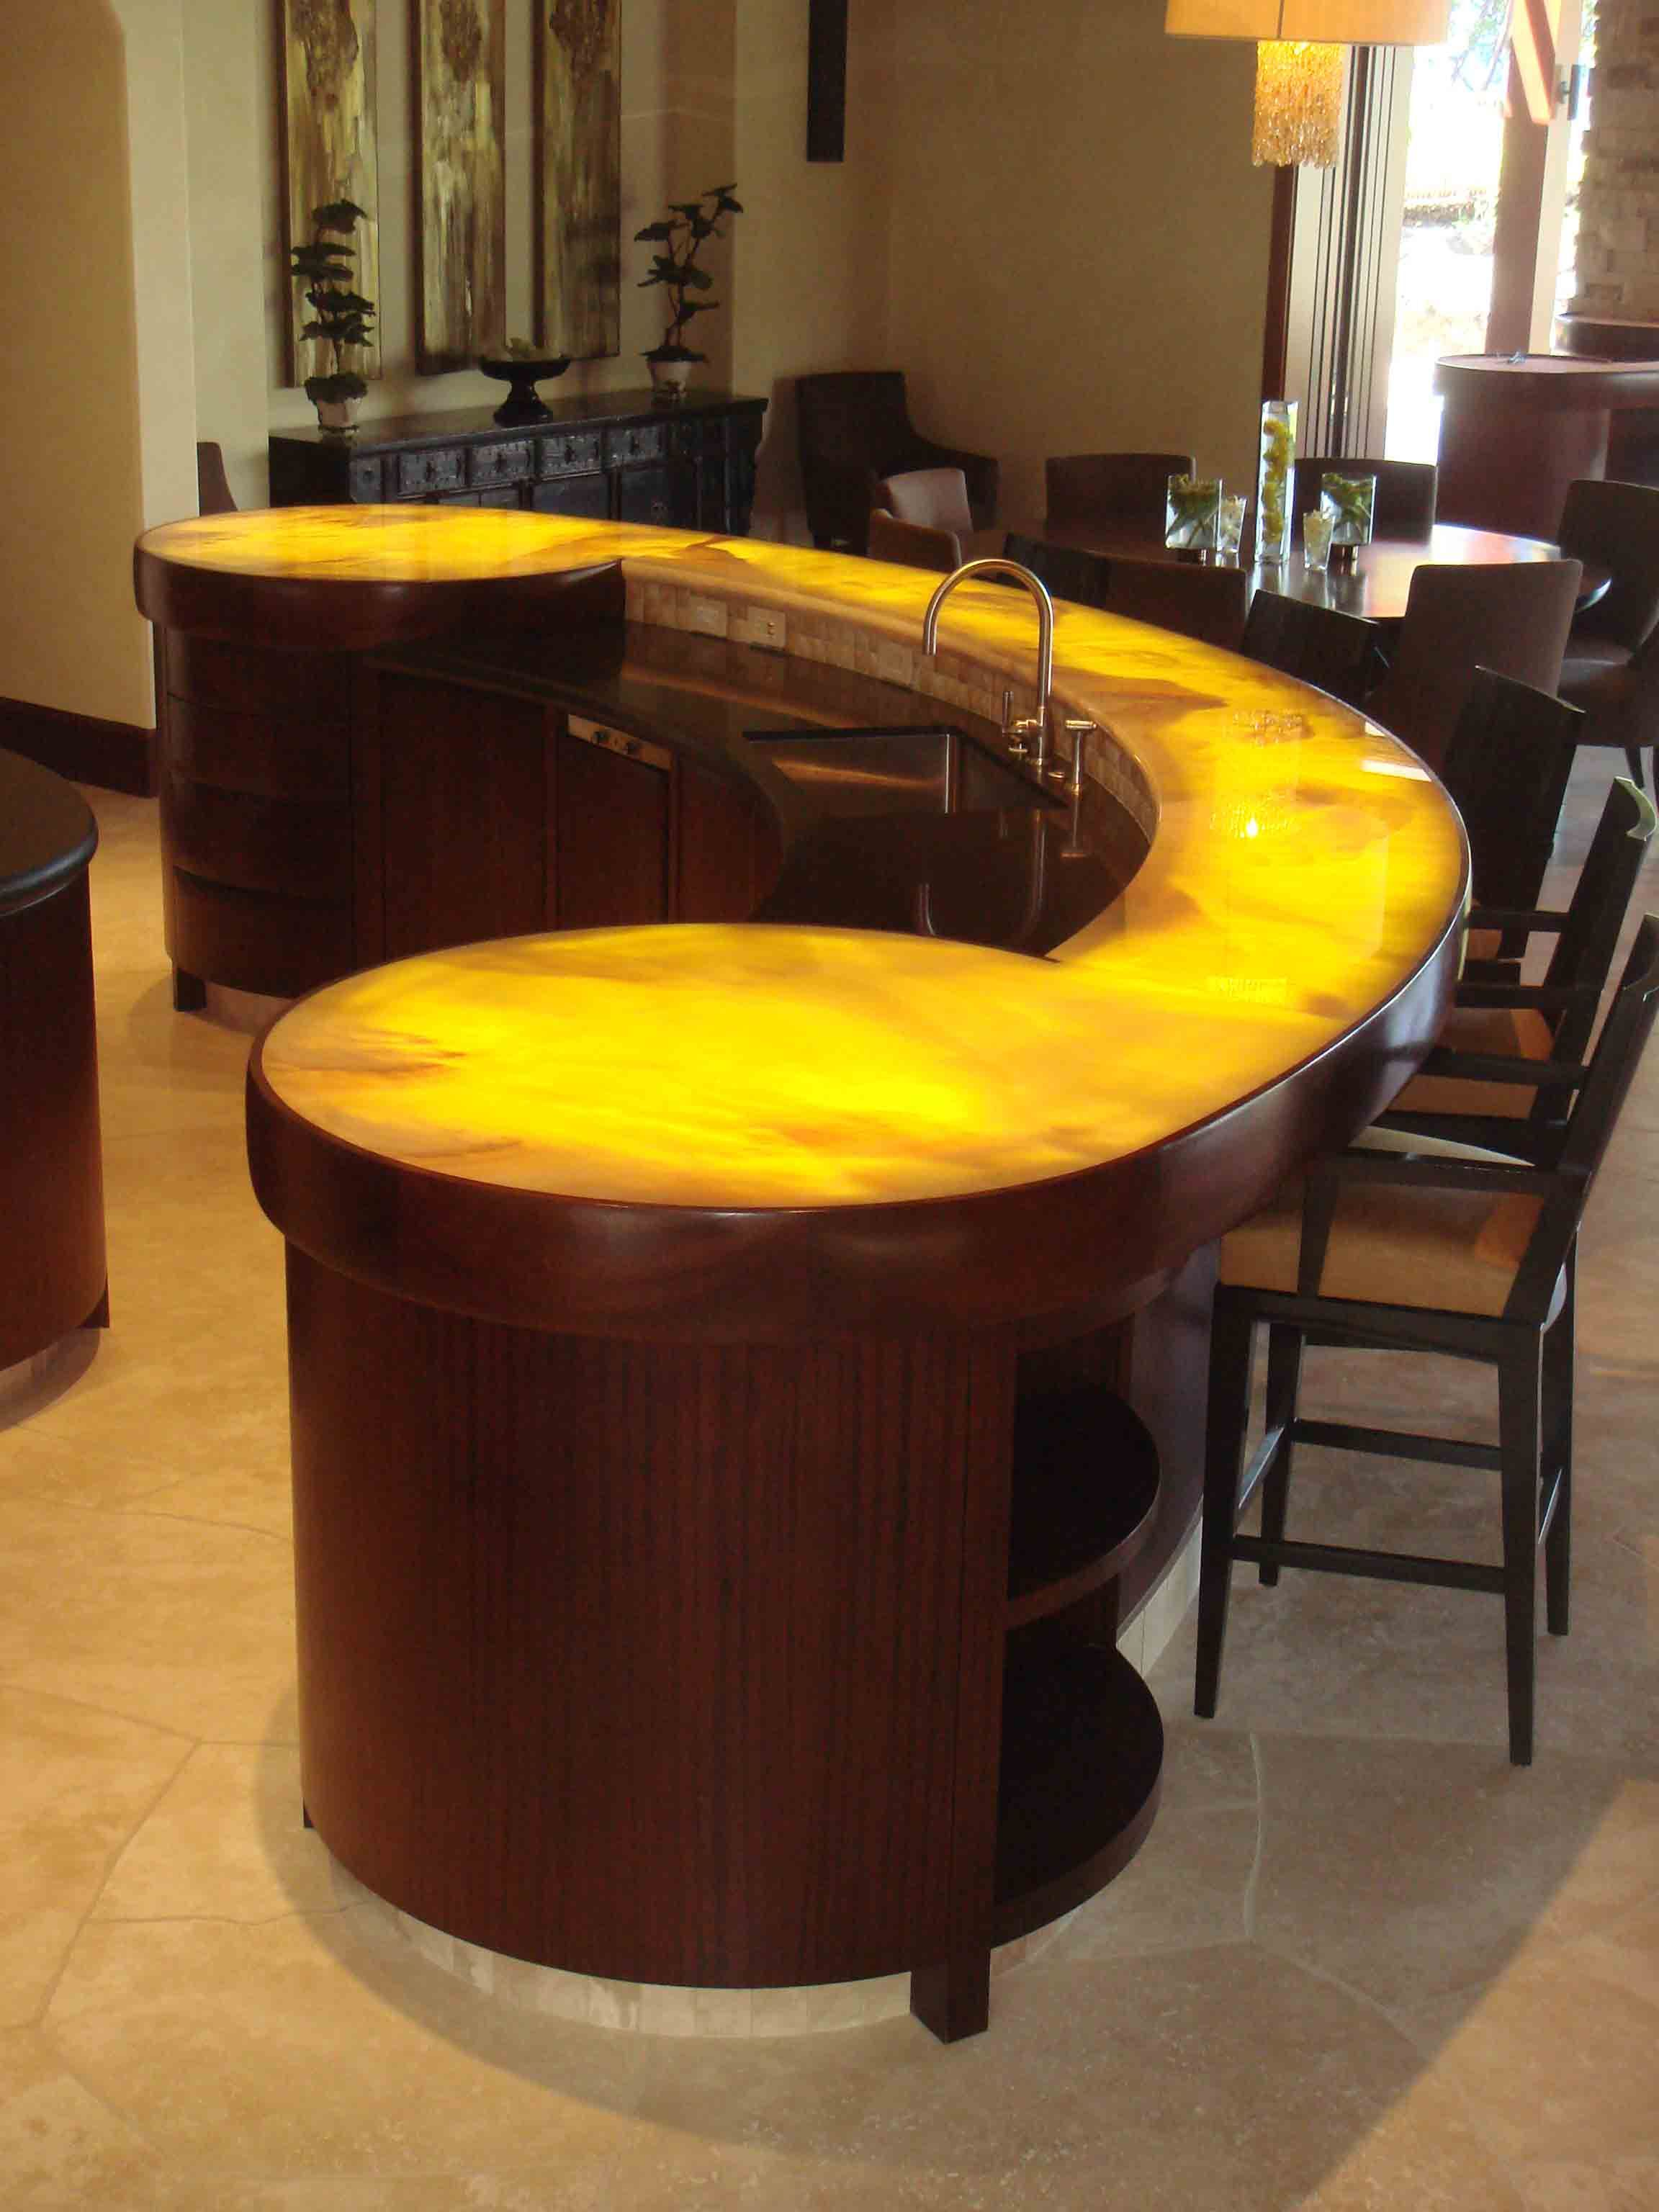 Fetching Modern Bar Counter Designs For Home Design With Dark Brown Wood Small Bar Table Also